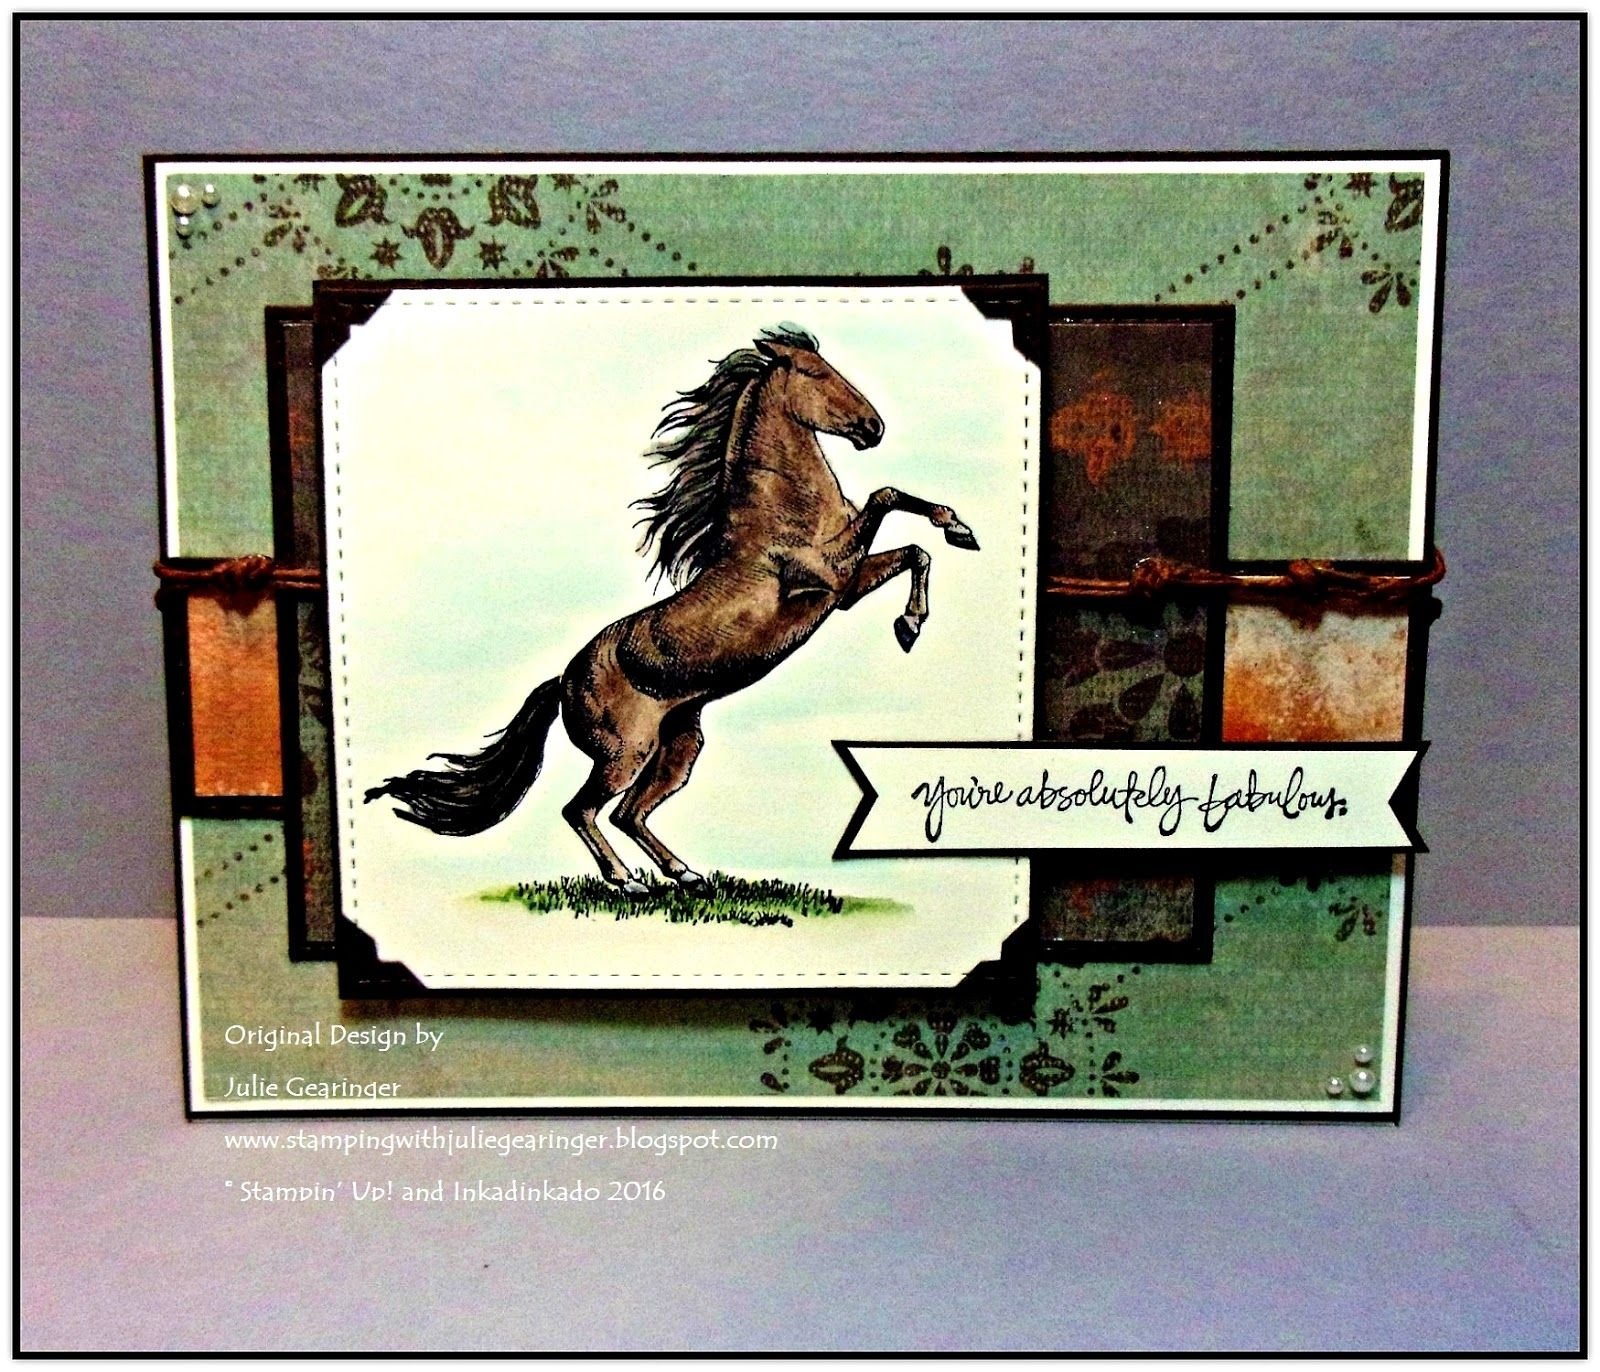 """Stamping with Julie Gearinger: Stampin' Up! retired """"Absolutely Fabulous"""" stamp set, Inkadinkado """"Horses"""" and retired SU! """"Outlaw"""" DSP.  #juliegearinger, #horses, #cardmaking, #handmadecards, #stampinup, #encouragement, #mixedmedia, #jugs368, #sc618, #wt608, #inkadinkado"""